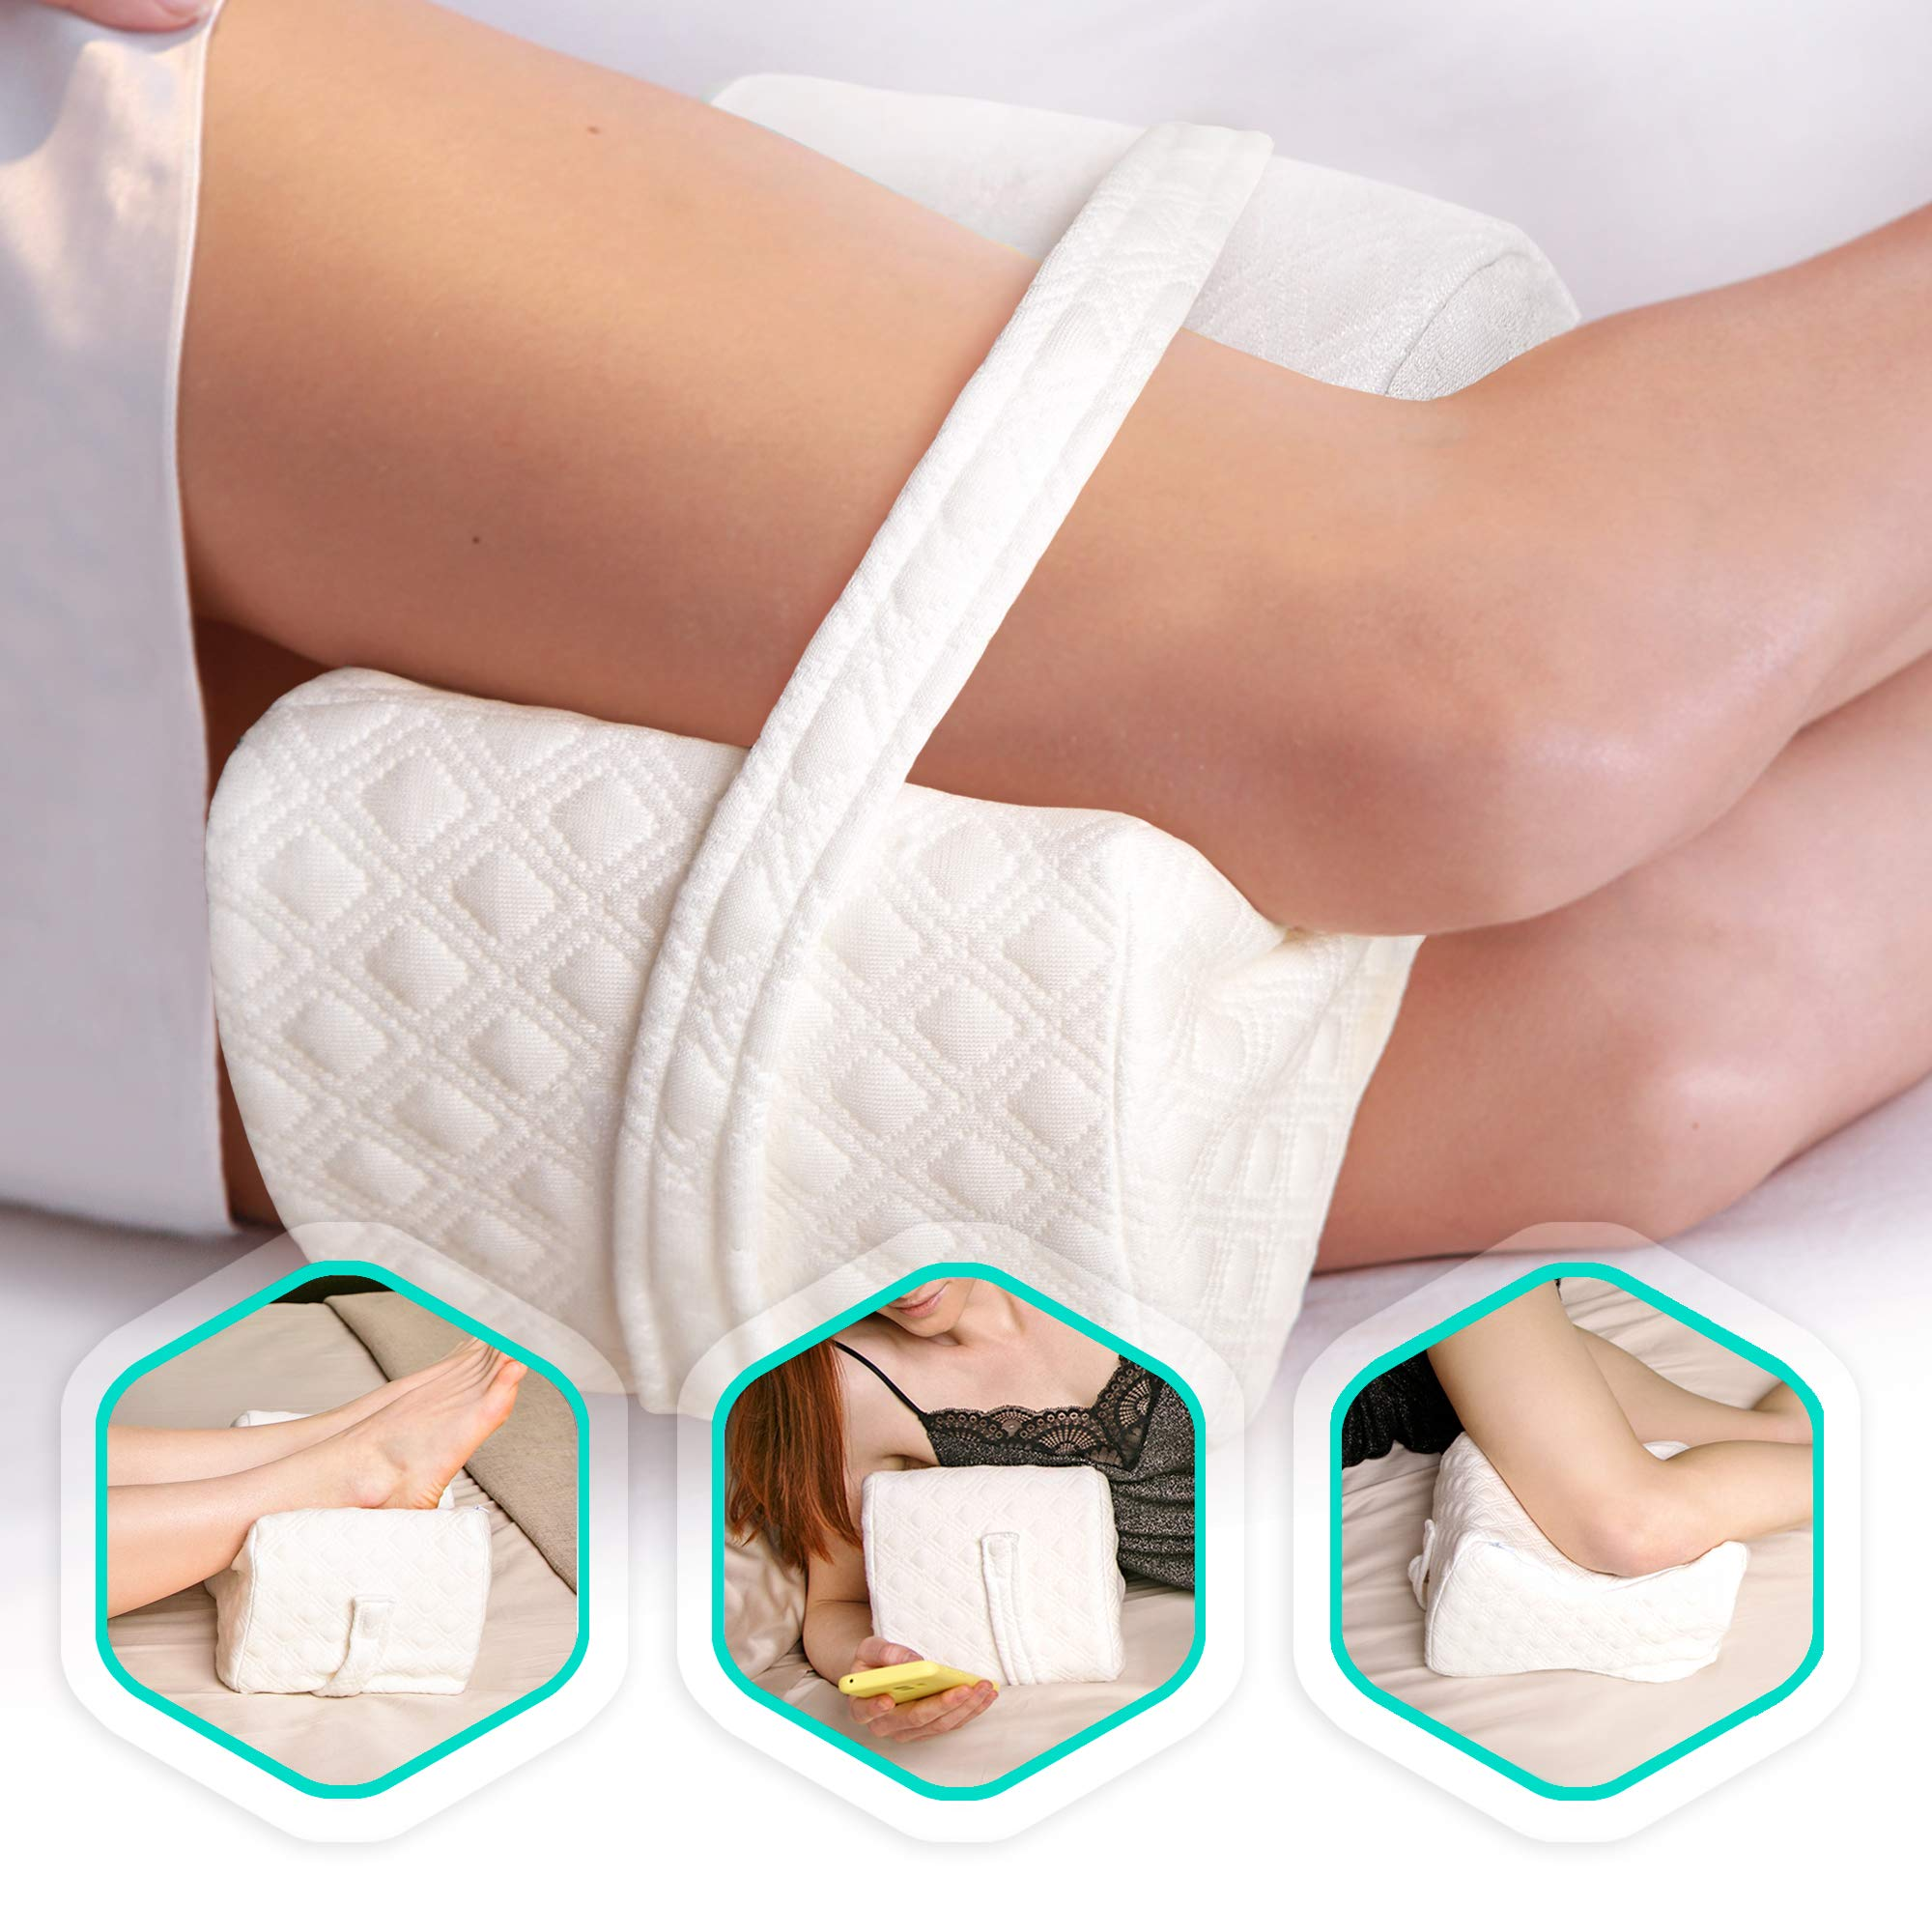 AERIS Knee Pillow for Side Sleepers -%100 Memory Foam Leg Pillow for Sleeping - Helps with Back & Hip Pain, Sciatica Pain Relief, Restless Leg Syndrome, Scoliosis - Great Between Legs When Sleeping